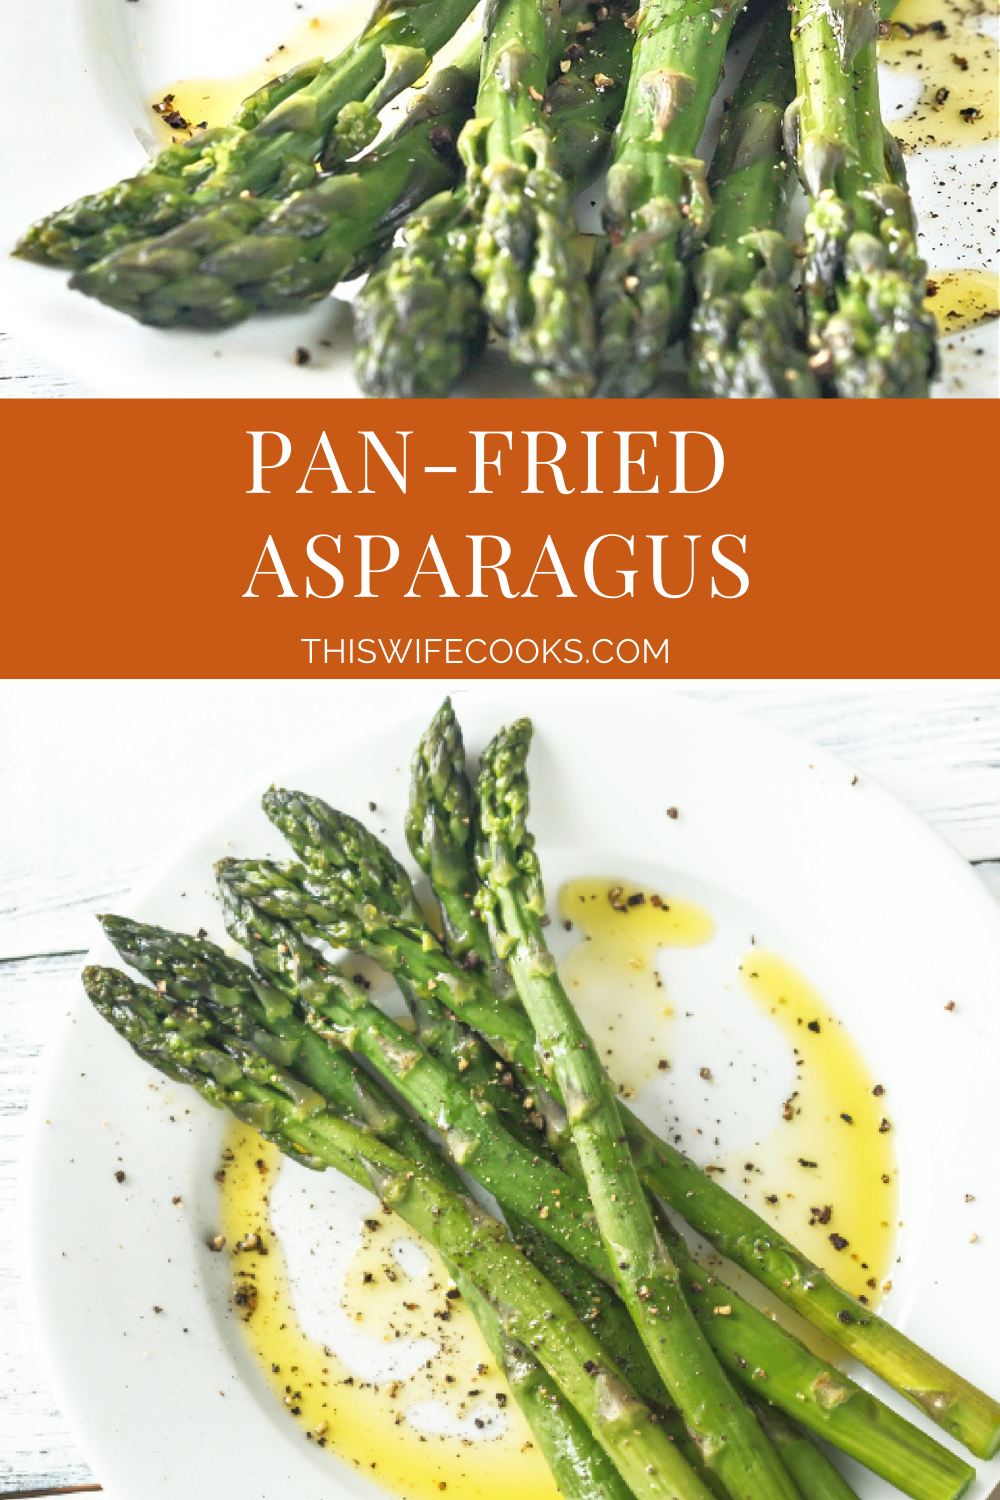 Fresh asparagus spears sauteed with olive oil, butter, garlic, and simple seasonings. Light, fresh, and easy. Ready to serve in just 10-minutes. via @thiswifecooks